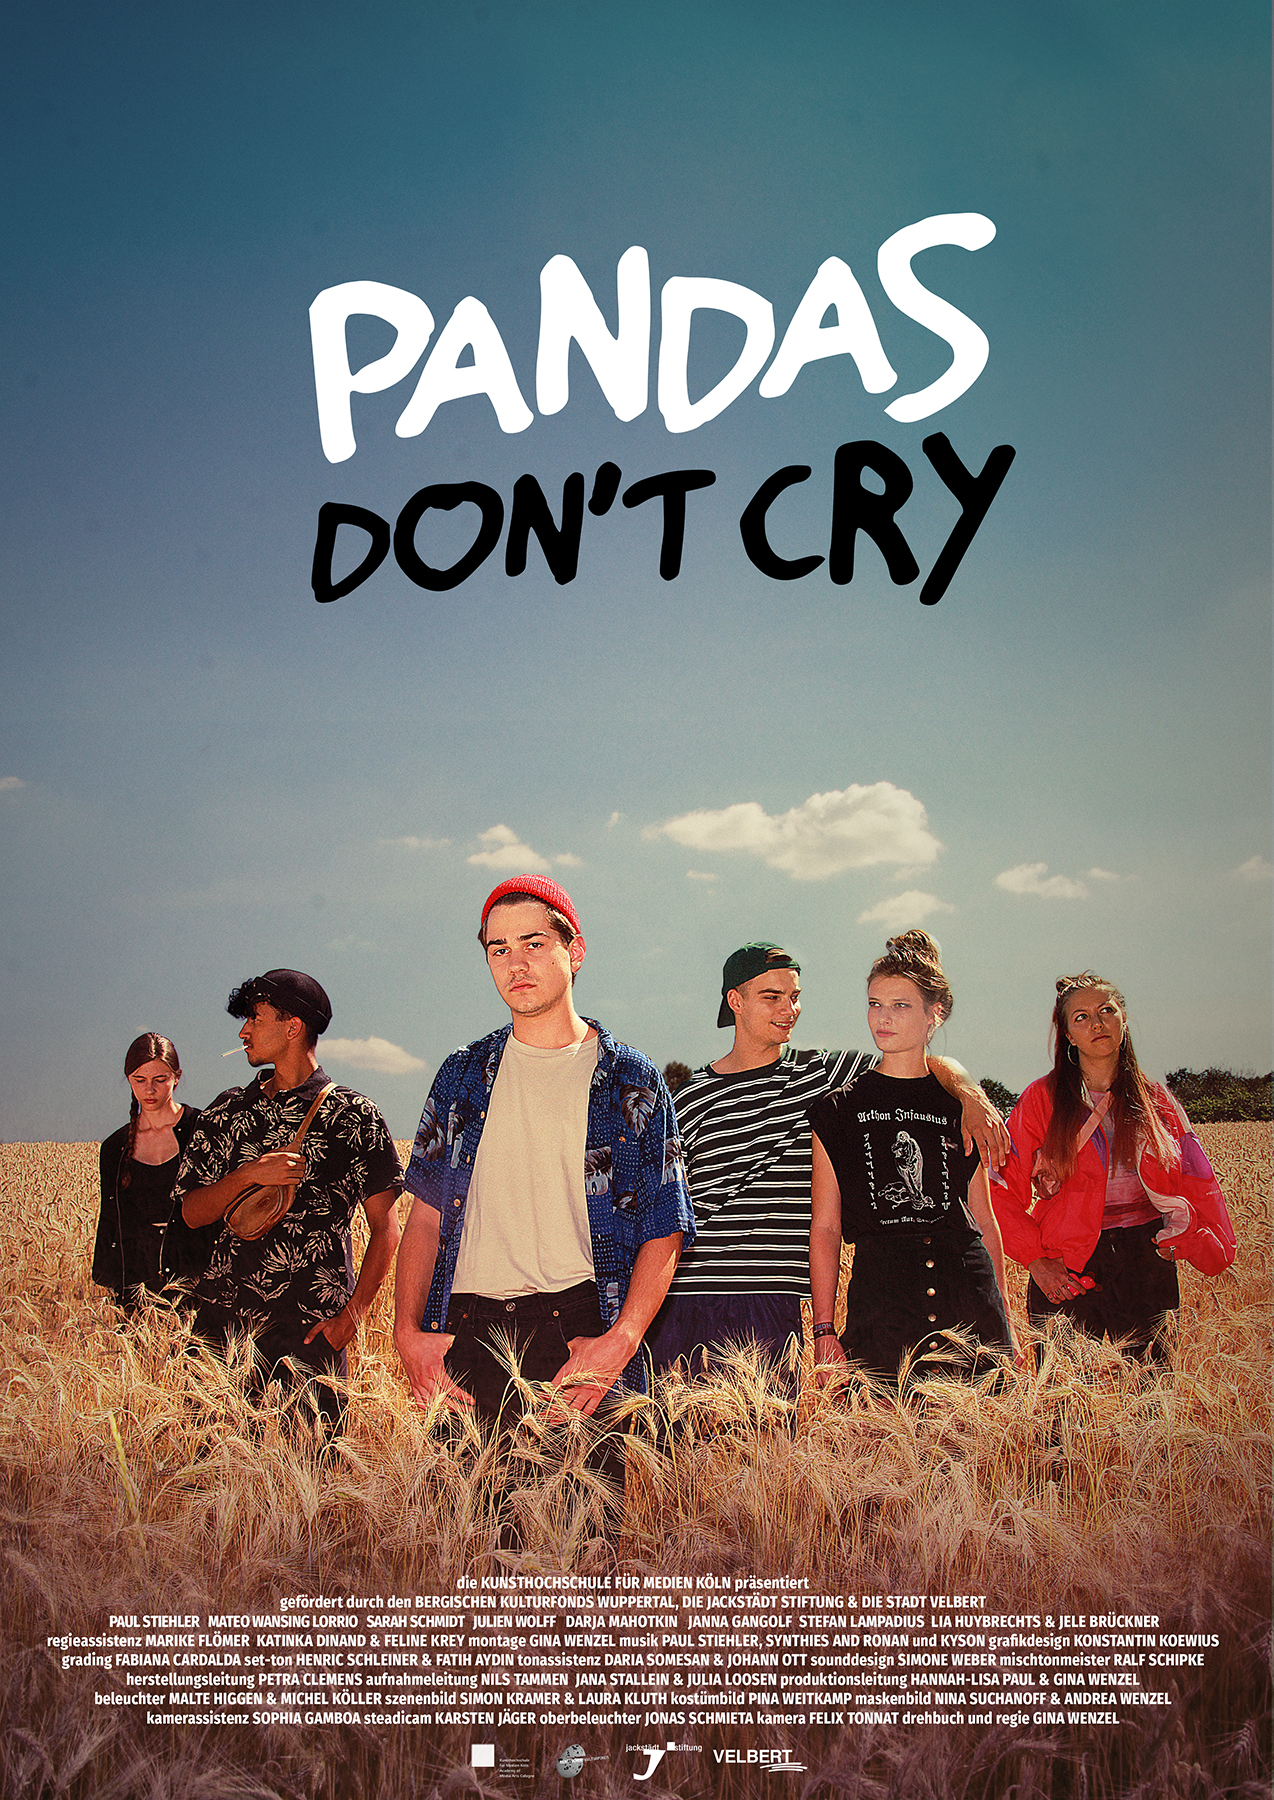 PANDAS_DONT_CRY_sw_web_72dpi.jpg